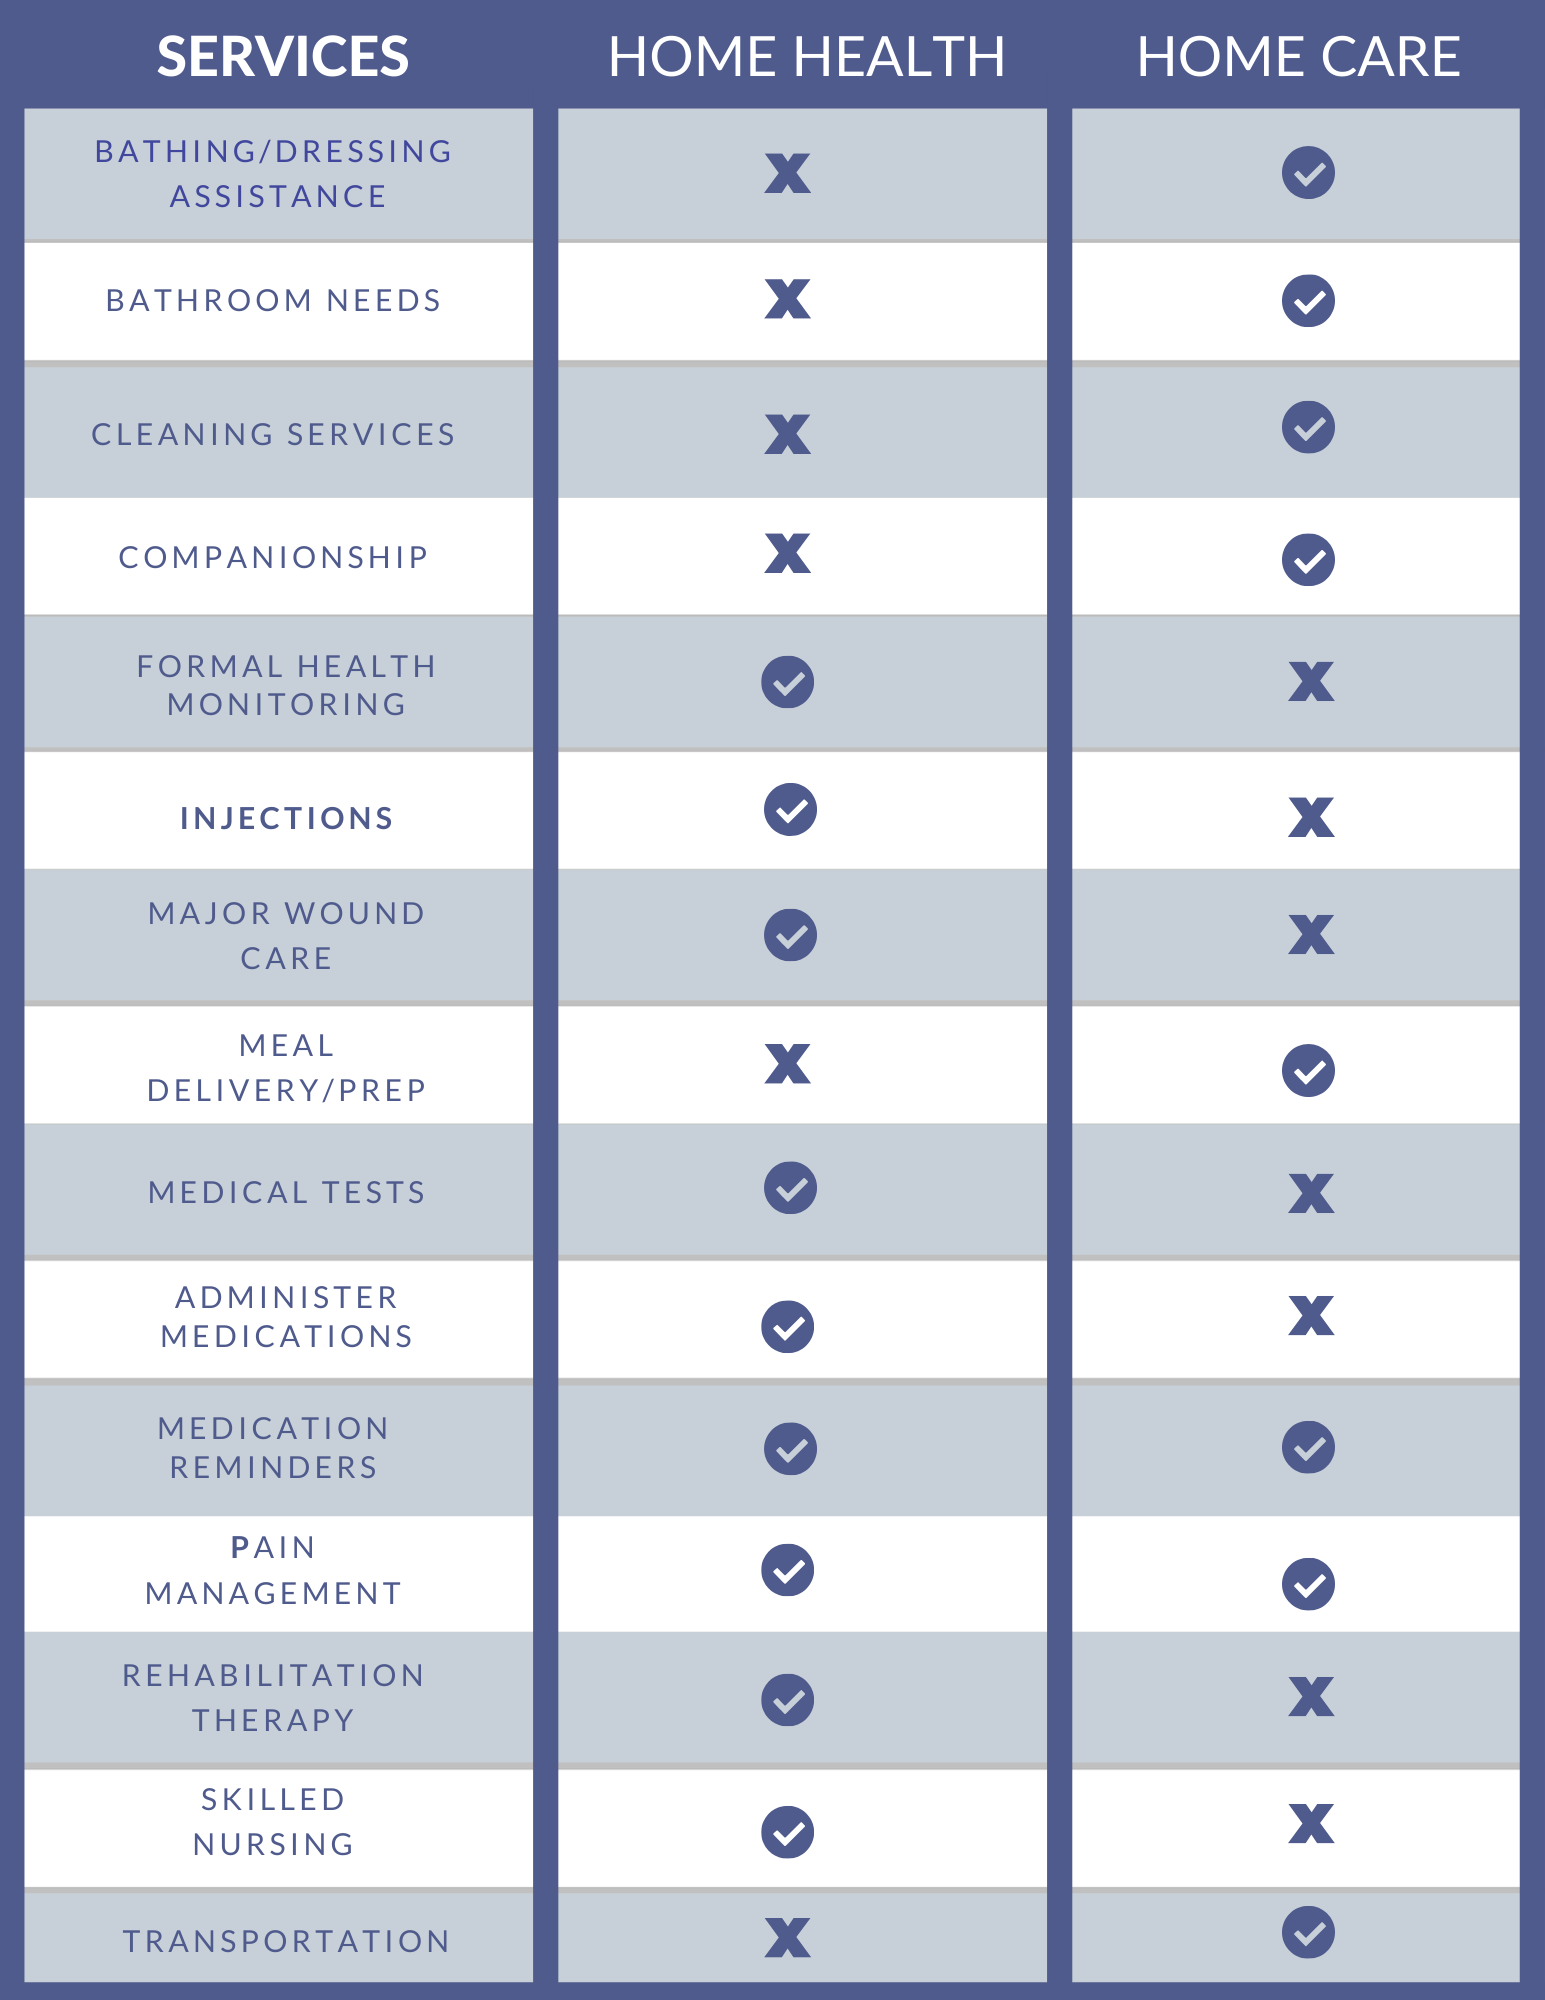 Comparison of services offered by home health and home care.